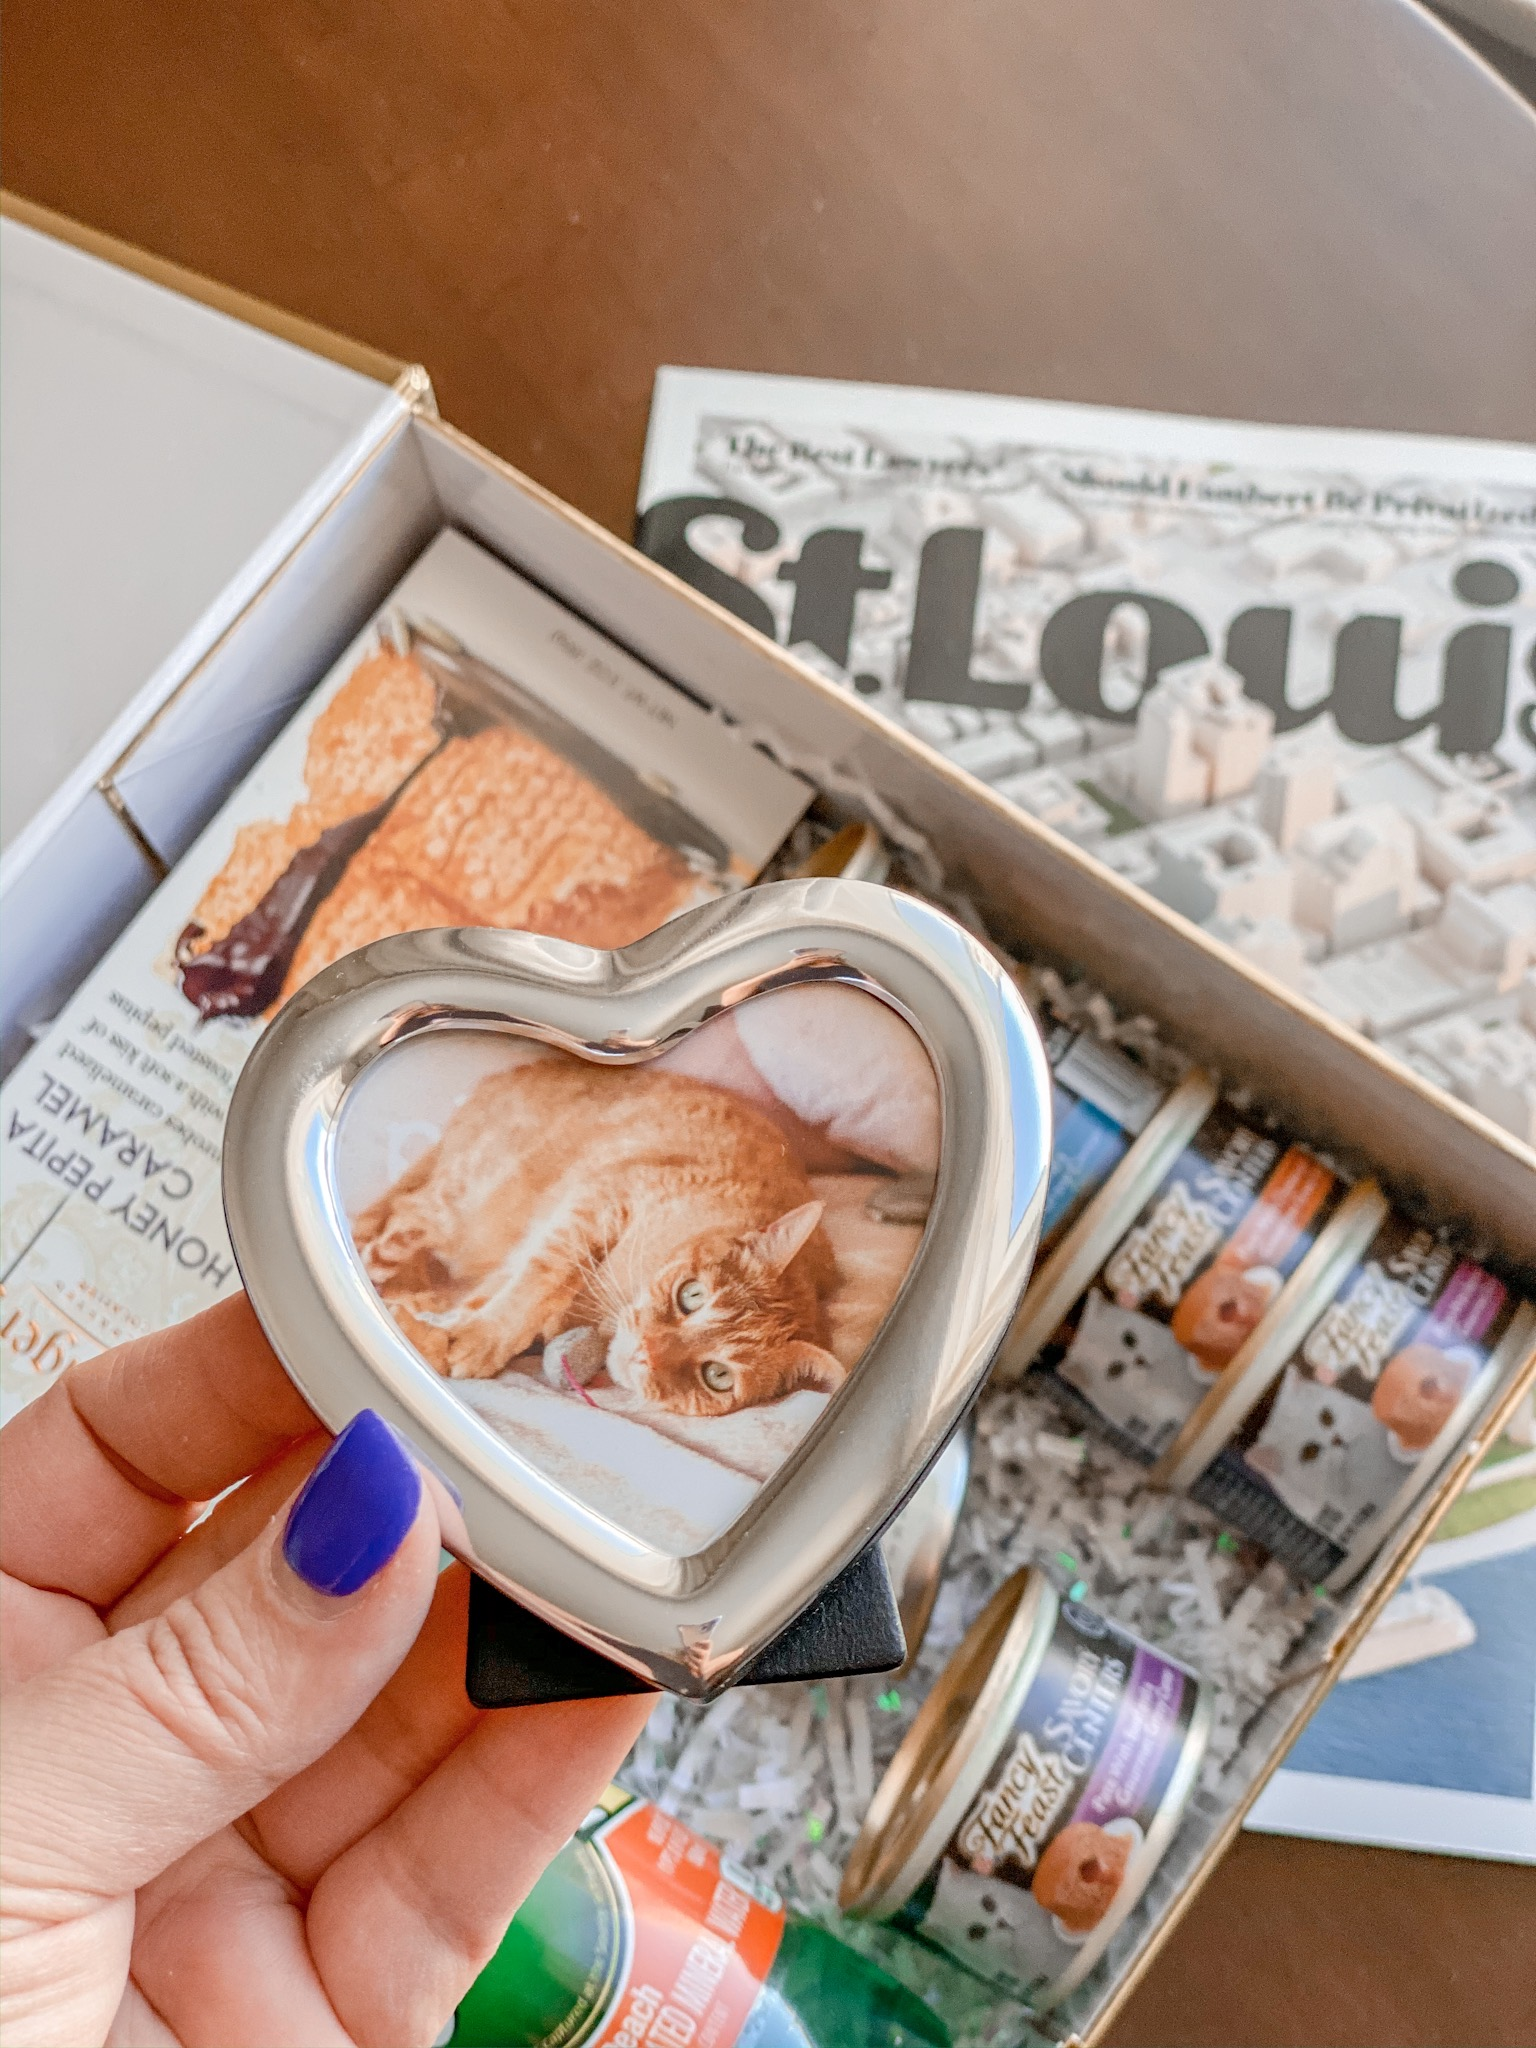 heart shaped frame with cute cat inside